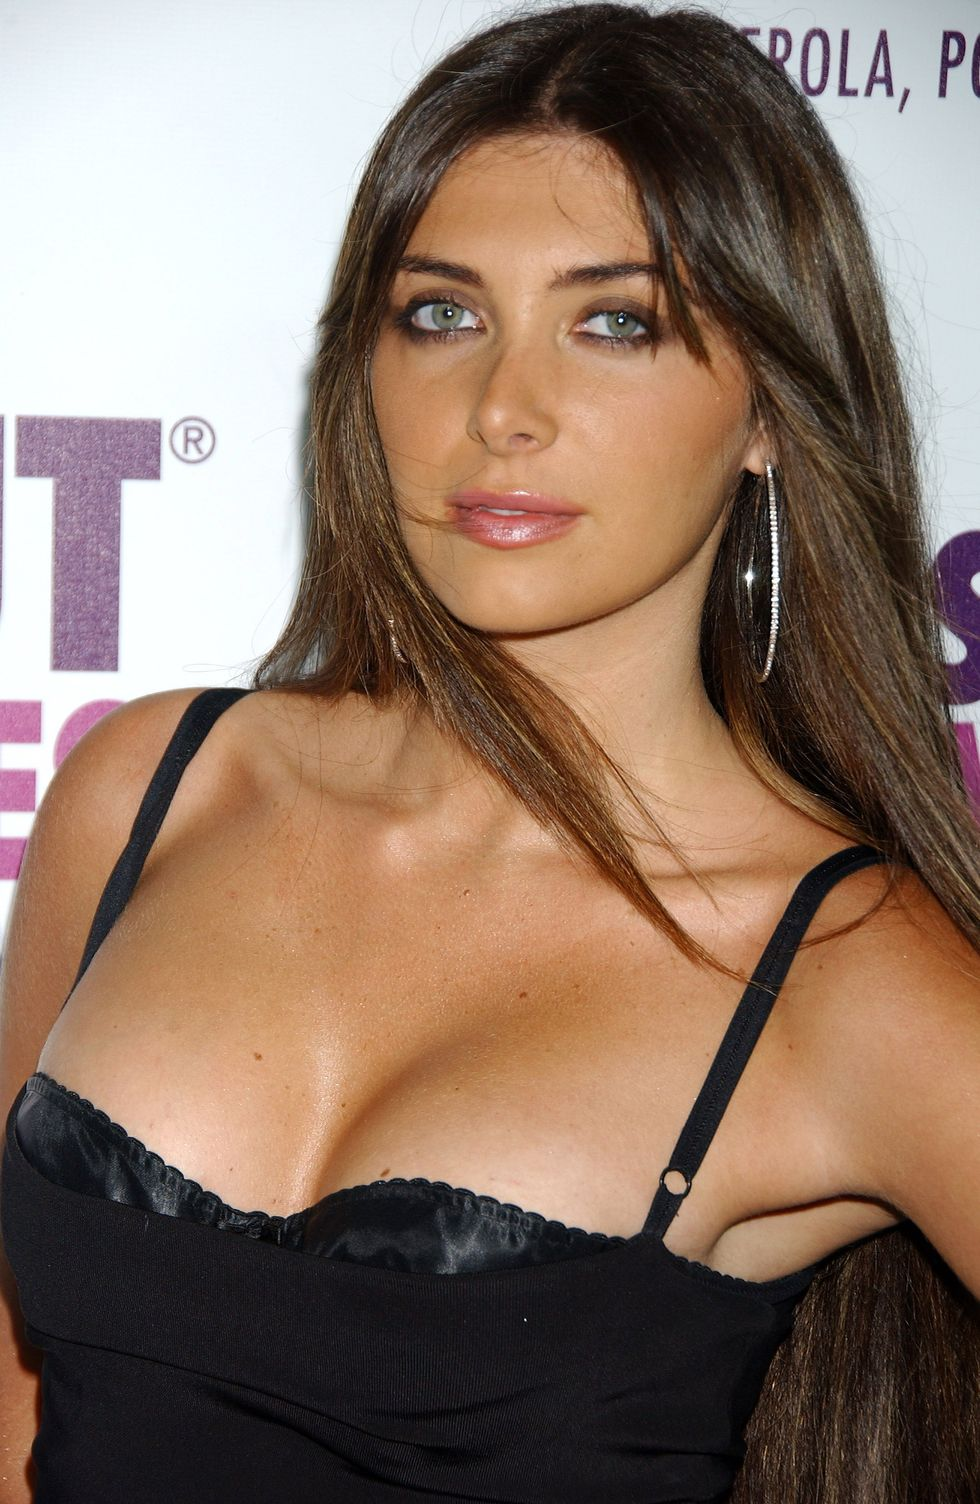 COLOR DE OJOS (clasificación y debate de personas famosas) - Página 11 Brittny-gastineau-absolut-los-angeles-premiere-at-the-kress-club-in-hollywood-03